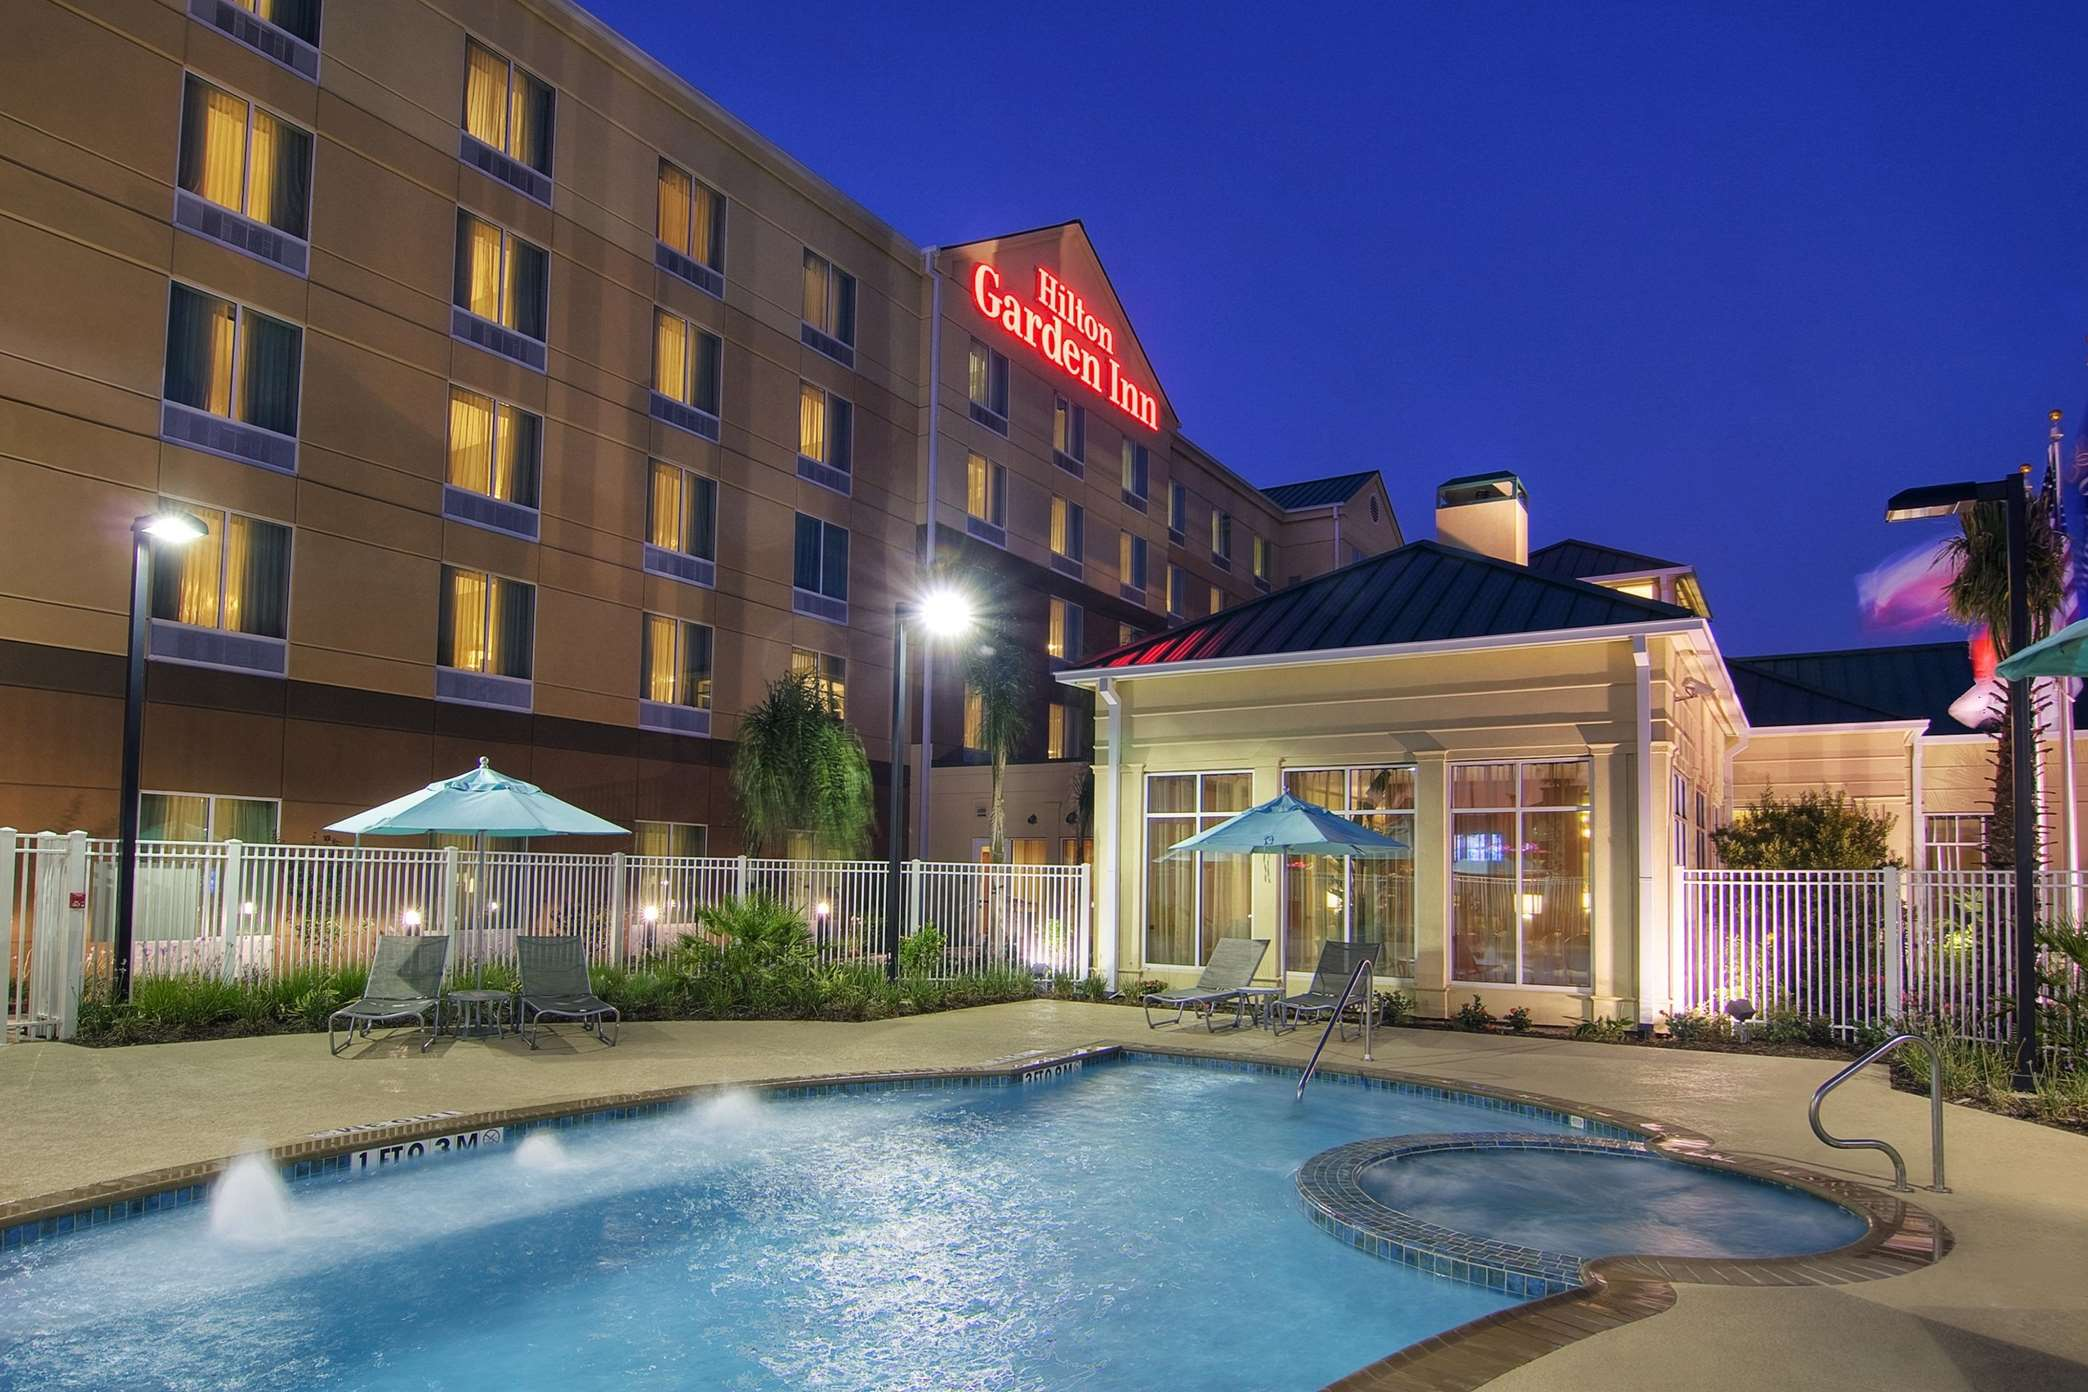 Hilton Garden Inn Houston Pearland At 12101 Shadow Creek Pkwy Pearland Tx On Fave